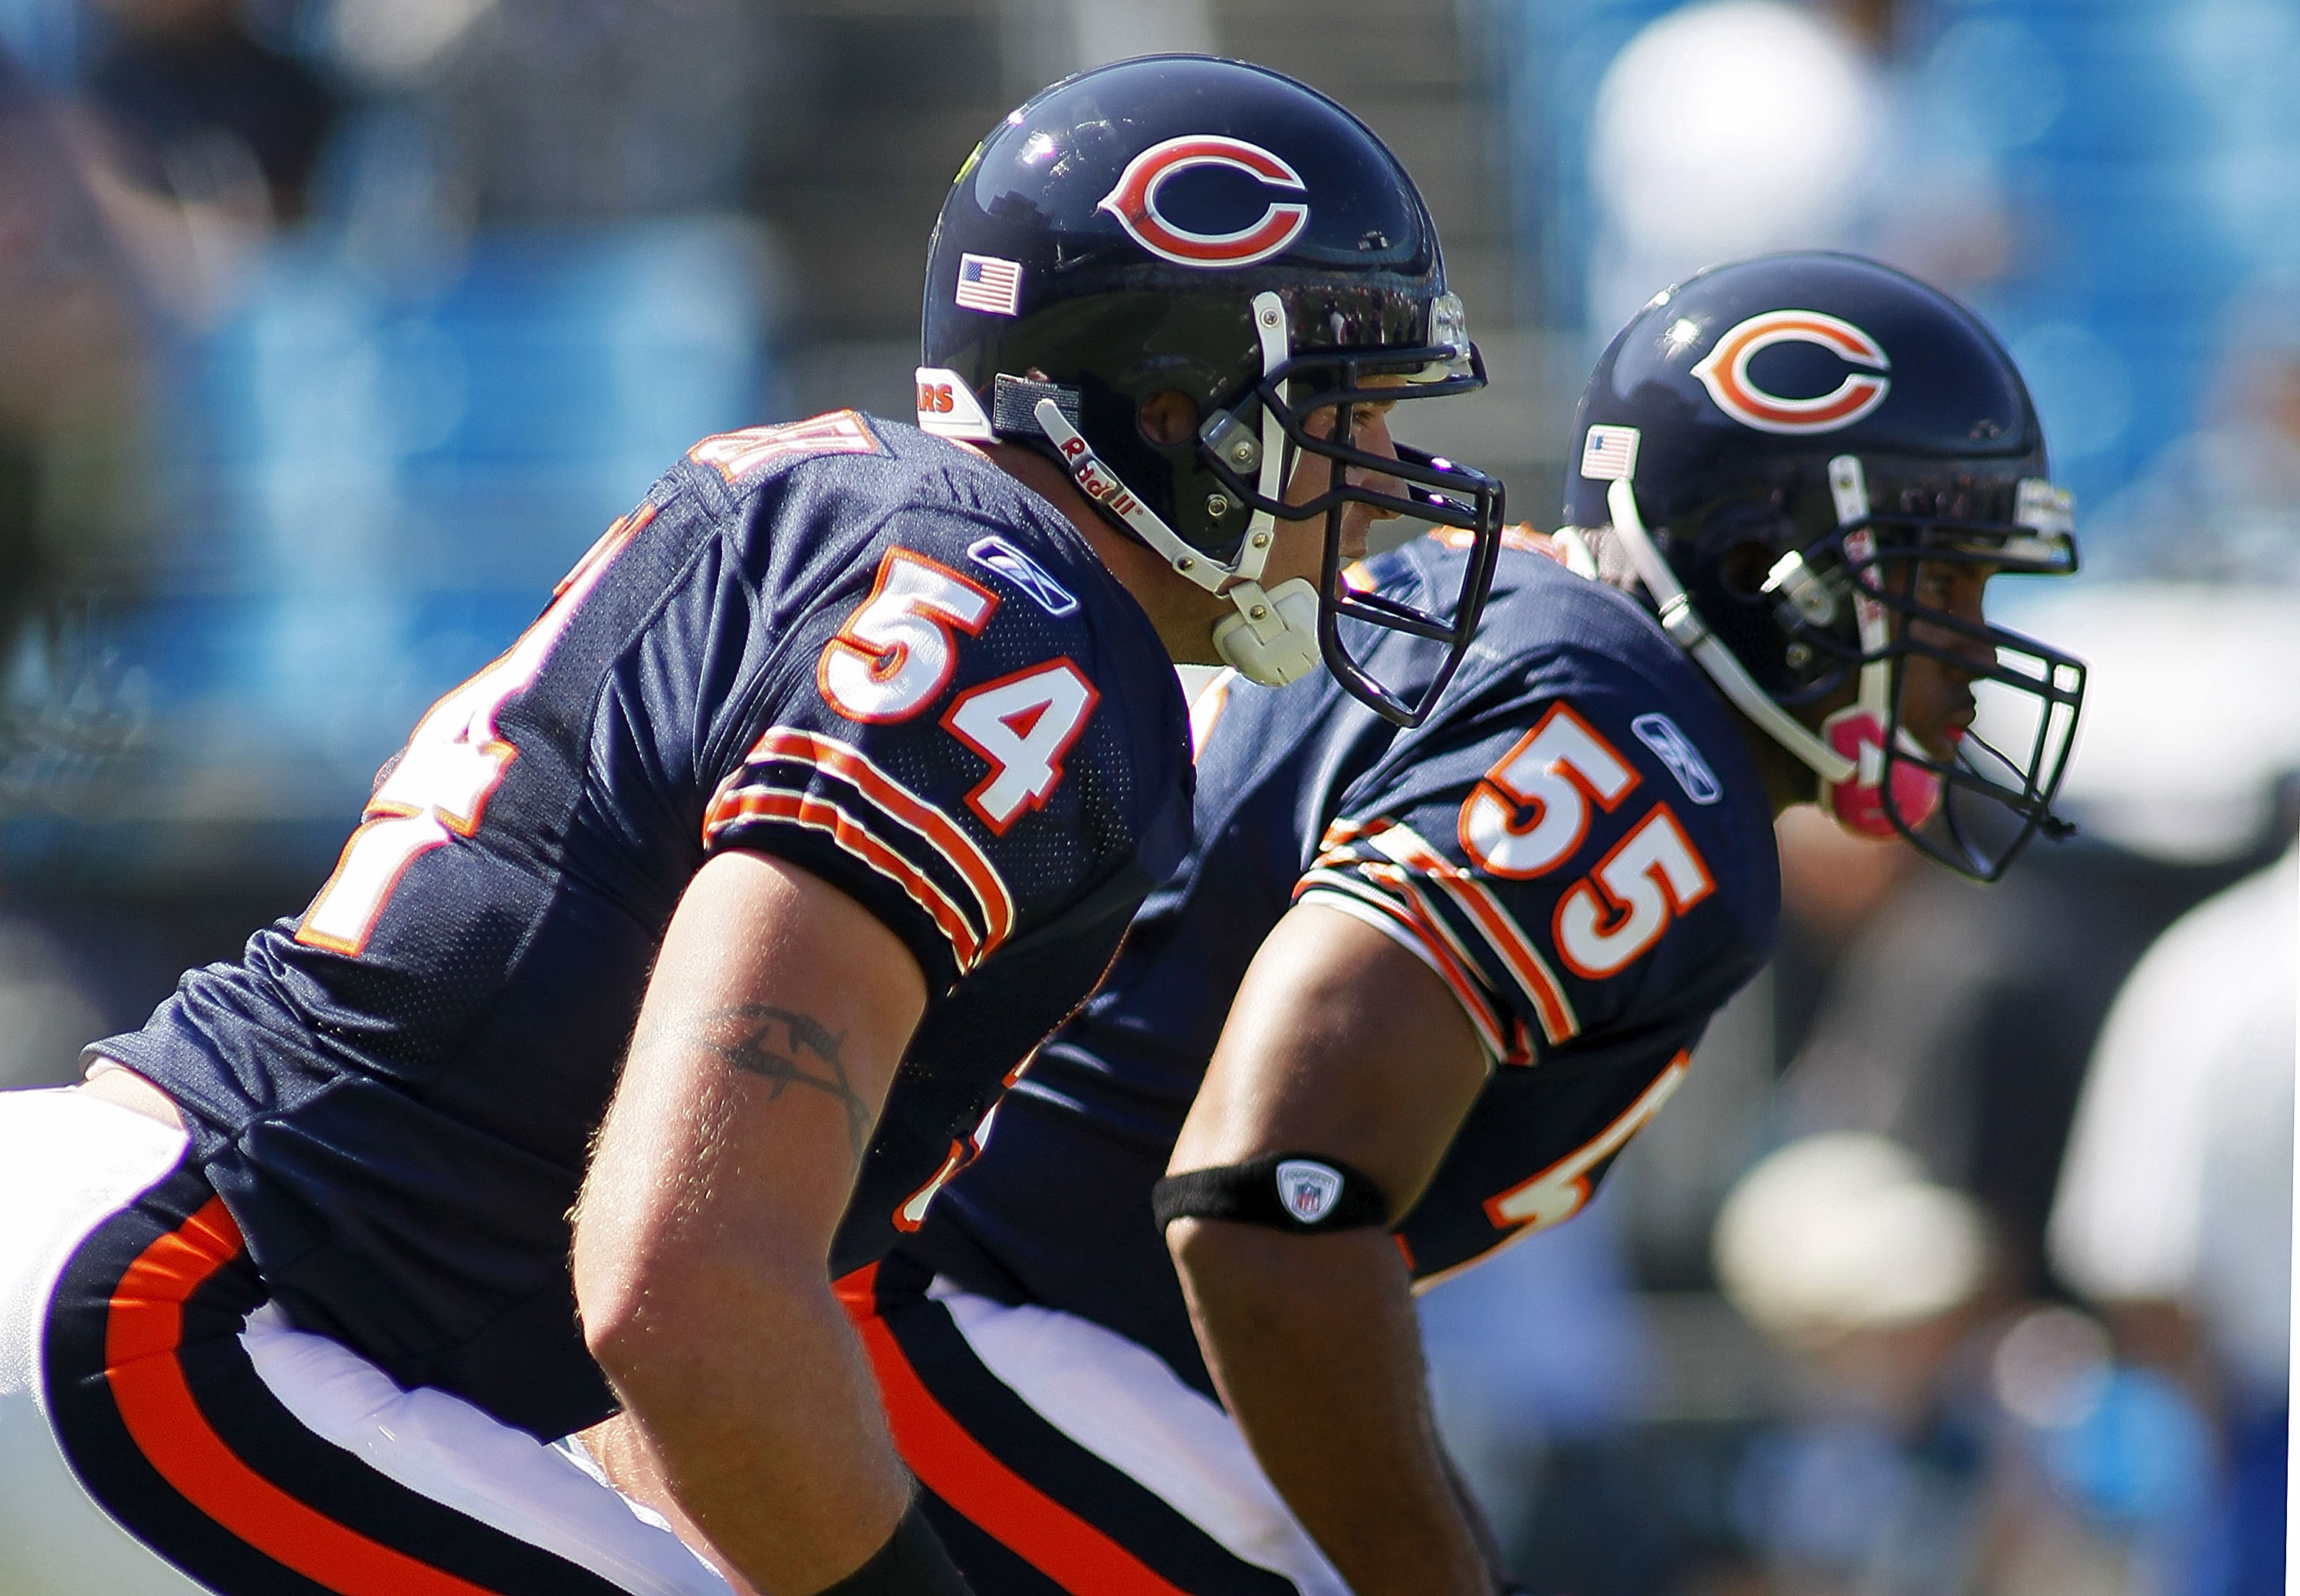 CHARLOTTE, NC - OCTOBER 10: Linebacker Brian Urlacher #54 of the Chicago Bears and linebacker Lance Briggs #55 of the Chicago Bears line up during warm ups prior to the Bears game against the Carolina Panthers at Bank of America Stadium on October 10, 201